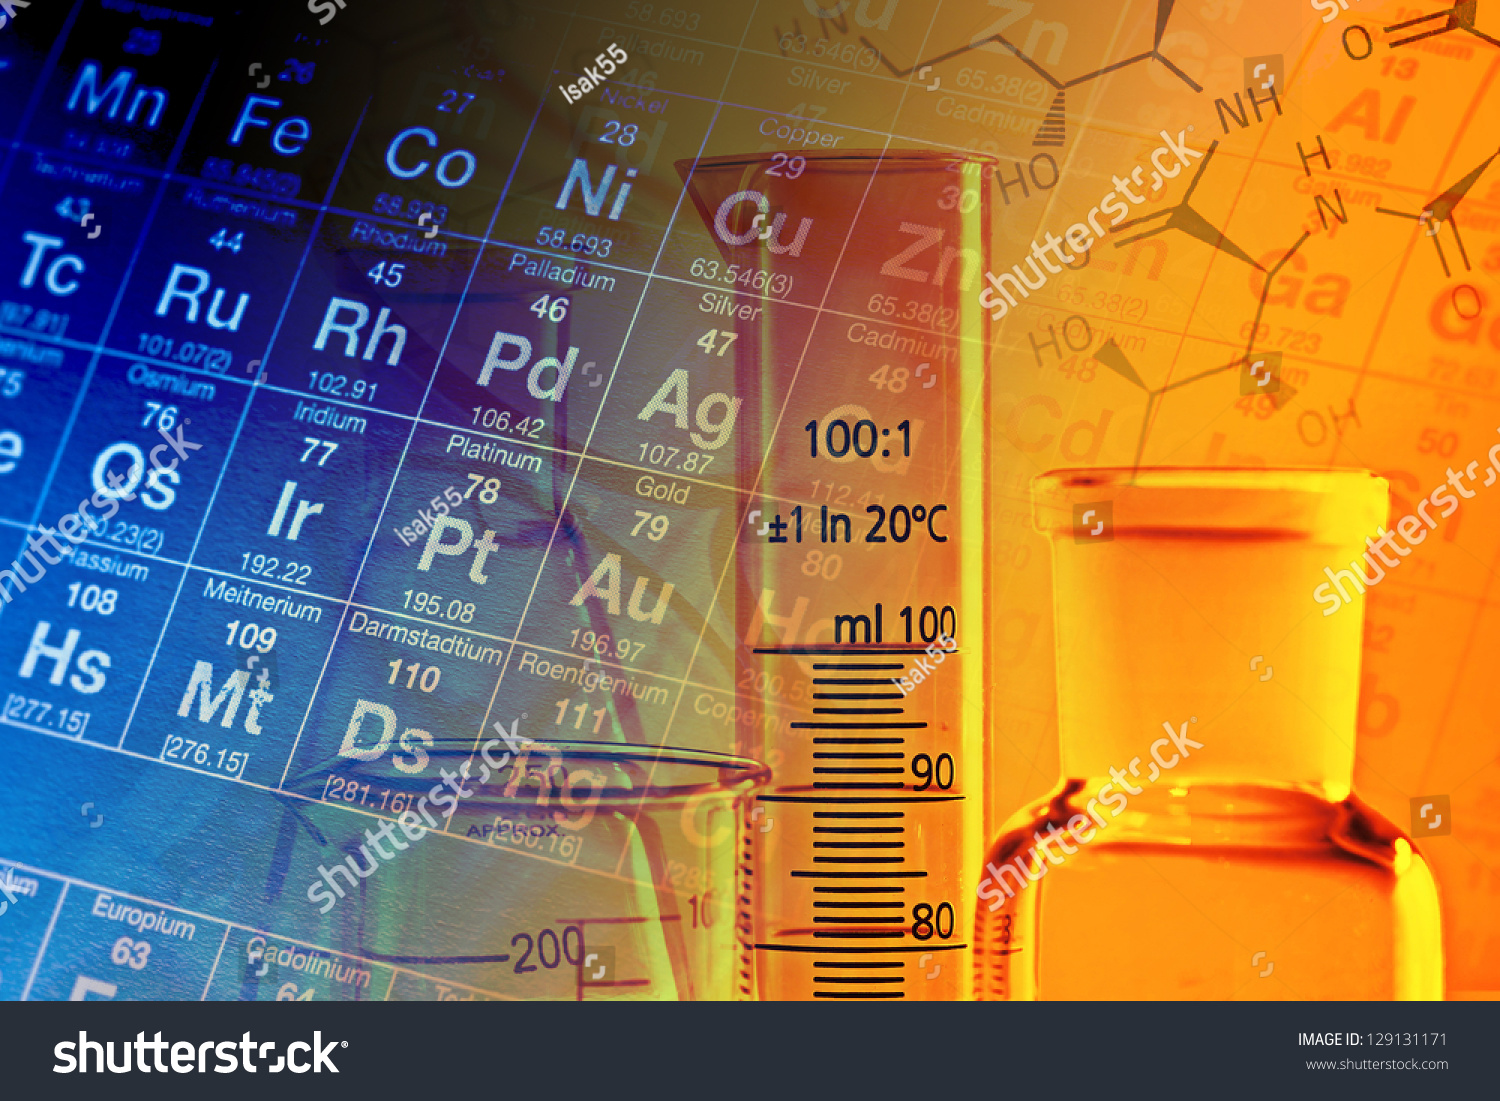 Laboratory glassware periodic table elements science stock photo laboratory glassware and periodic table of elements science concept gamestrikefo Images